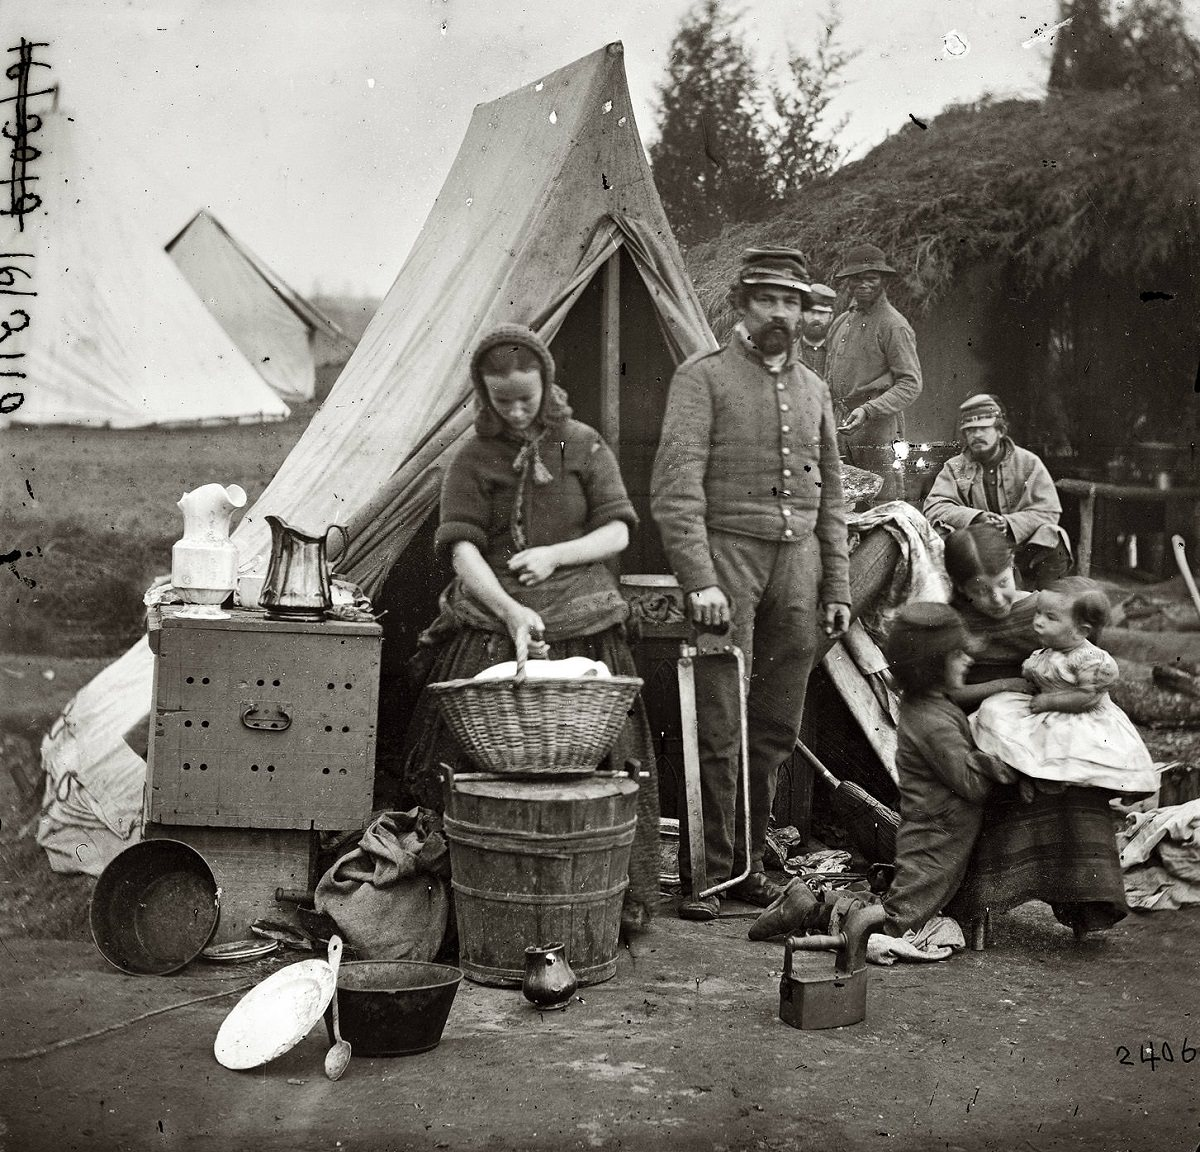 Washington, District of Columbia. Tent life of the 31st (later, 82nd) Pennsylvania Infantry at Queen's Farm, vicinity of Fort Slocum, 1861